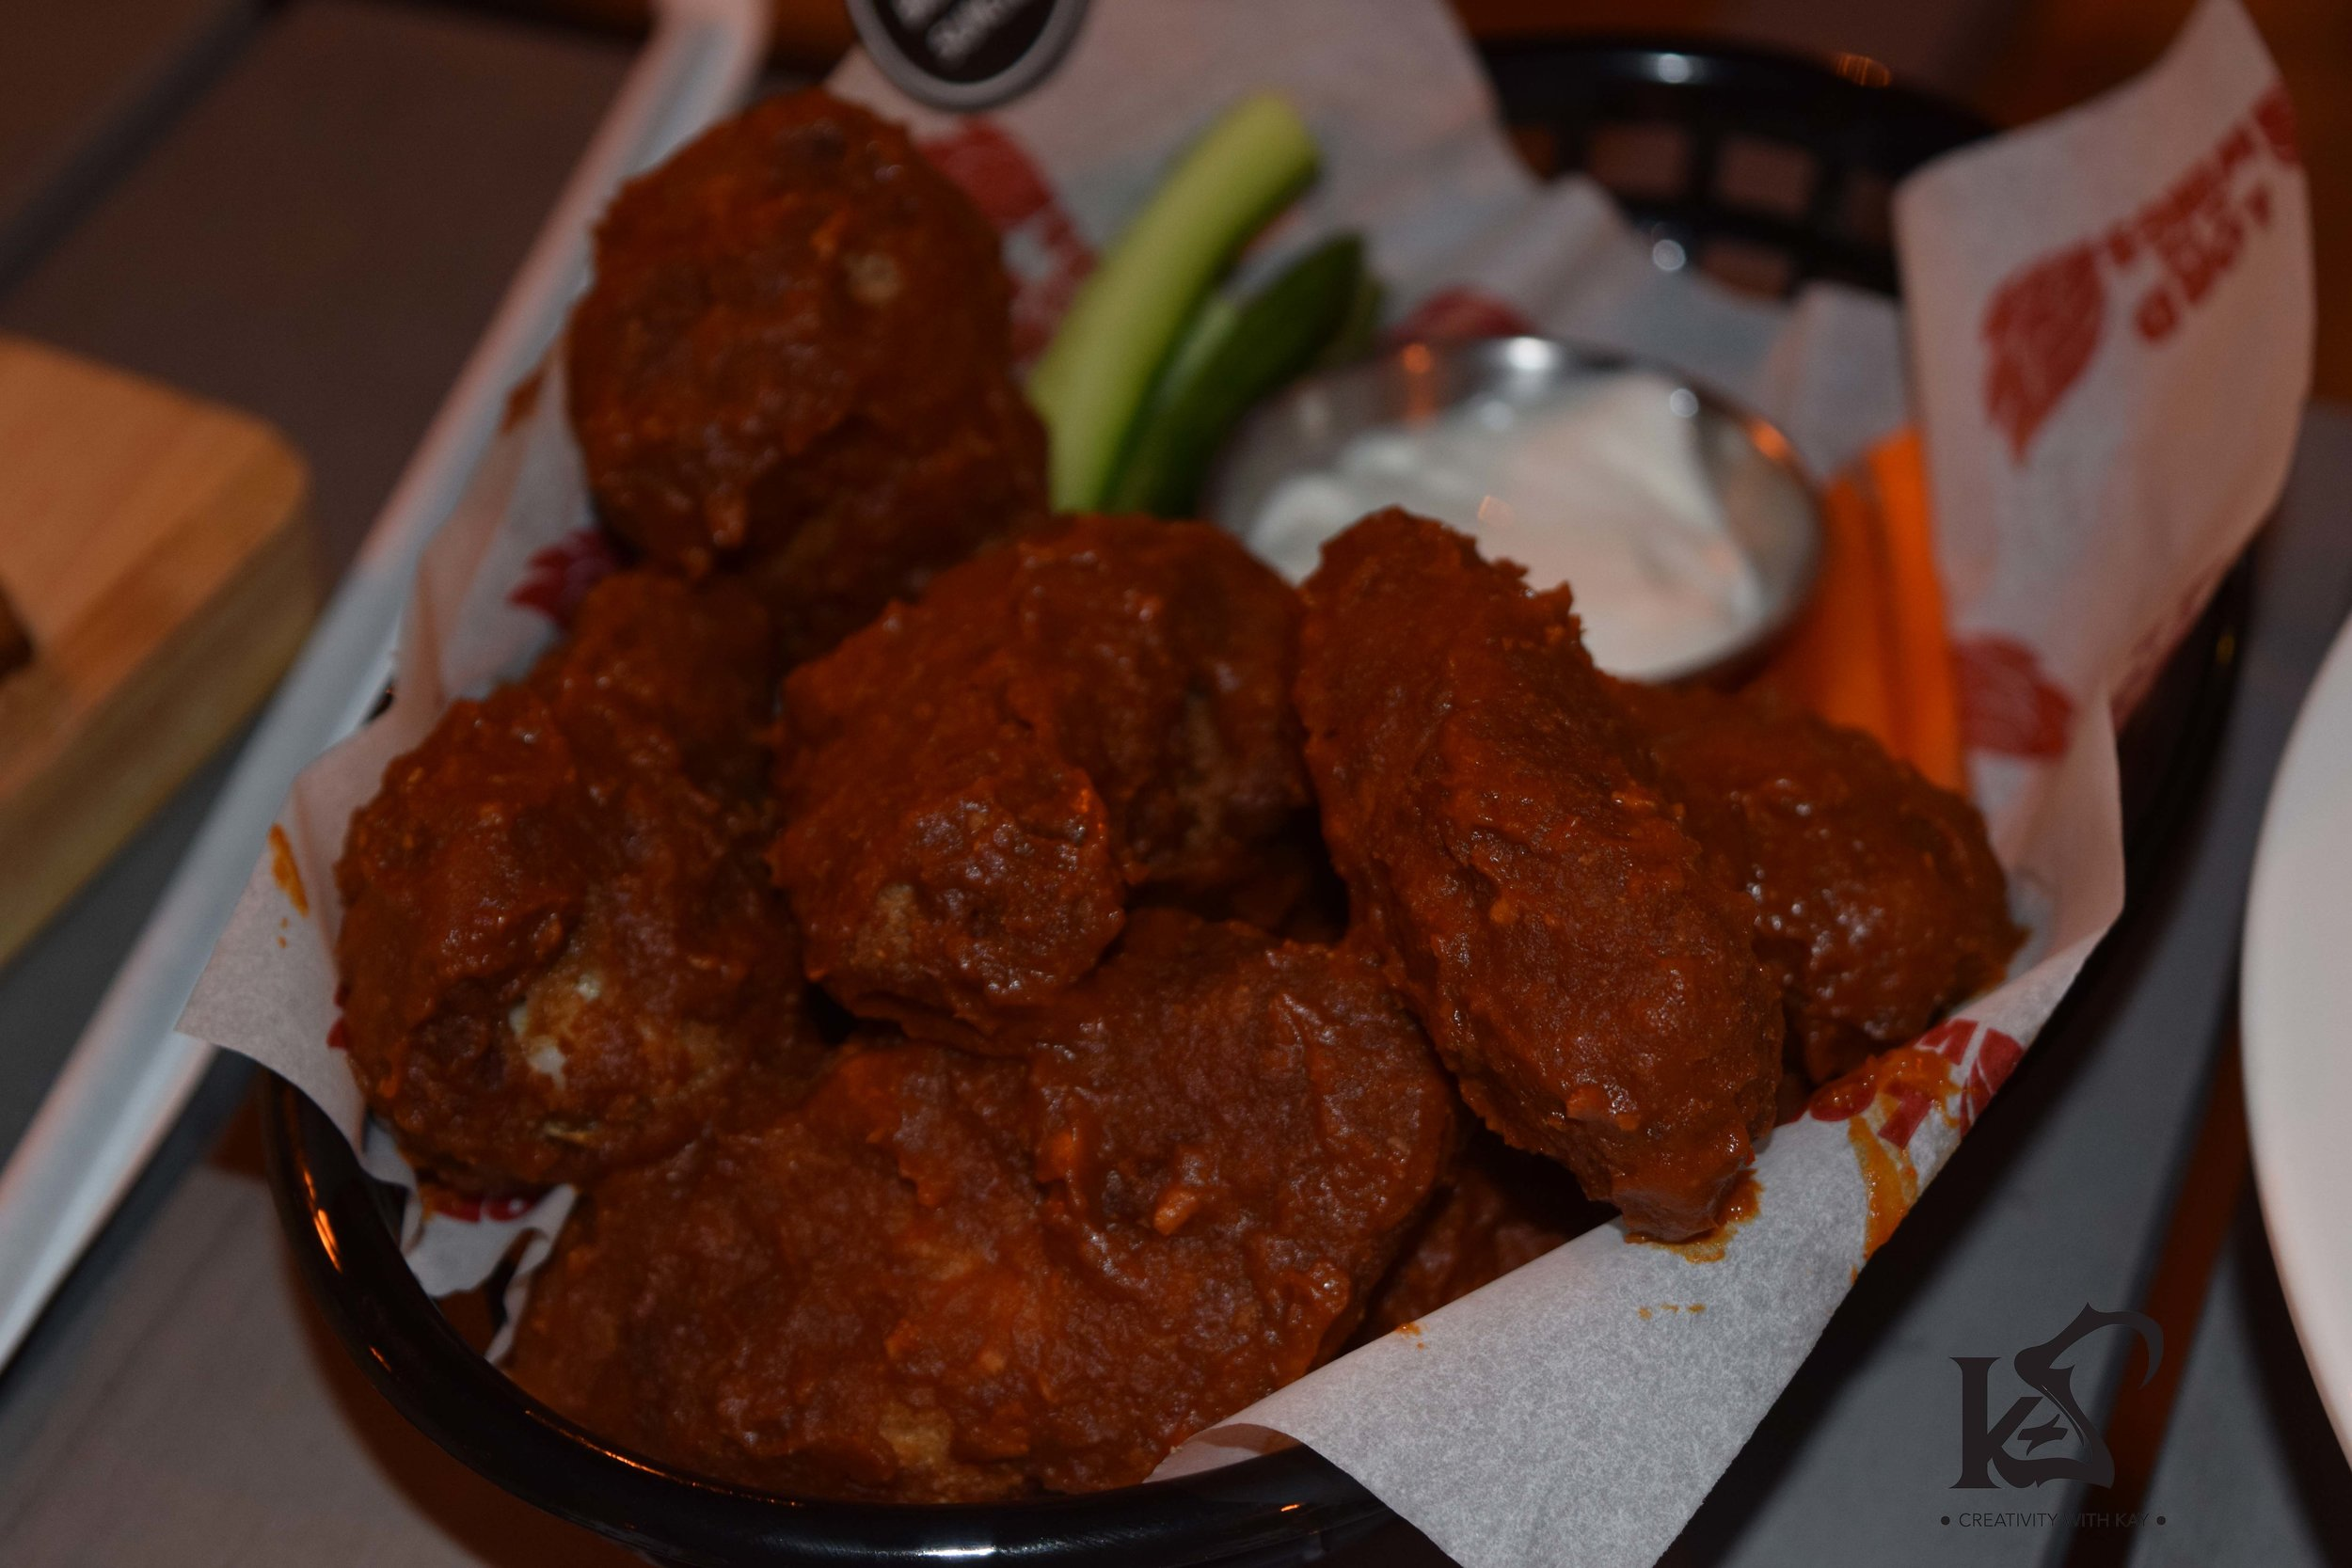 qatar-blogger-khansa-lord-of-the-wings-breaded-wings